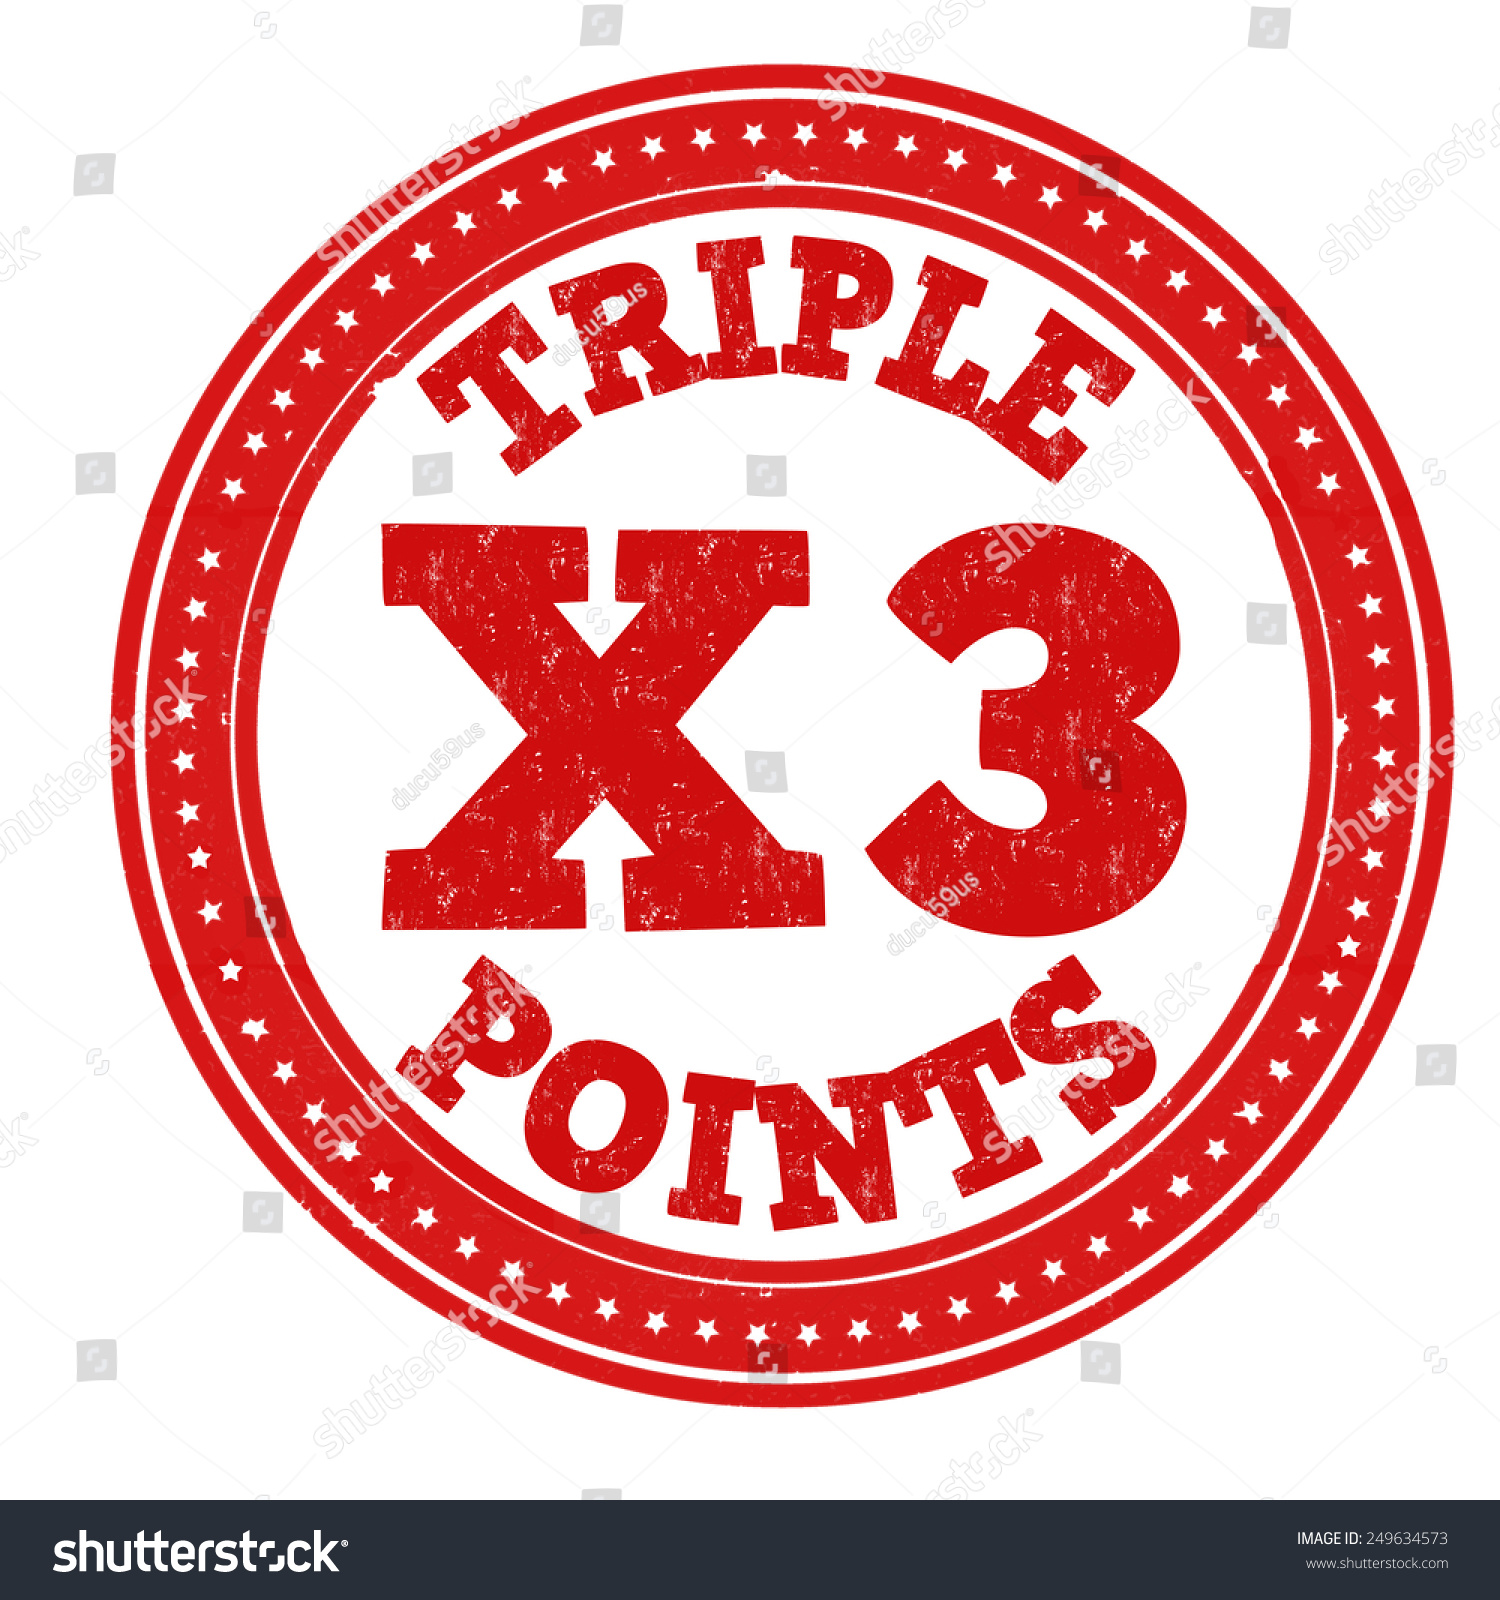 earn x 3 triple points grunge rubber stock vector royalty free